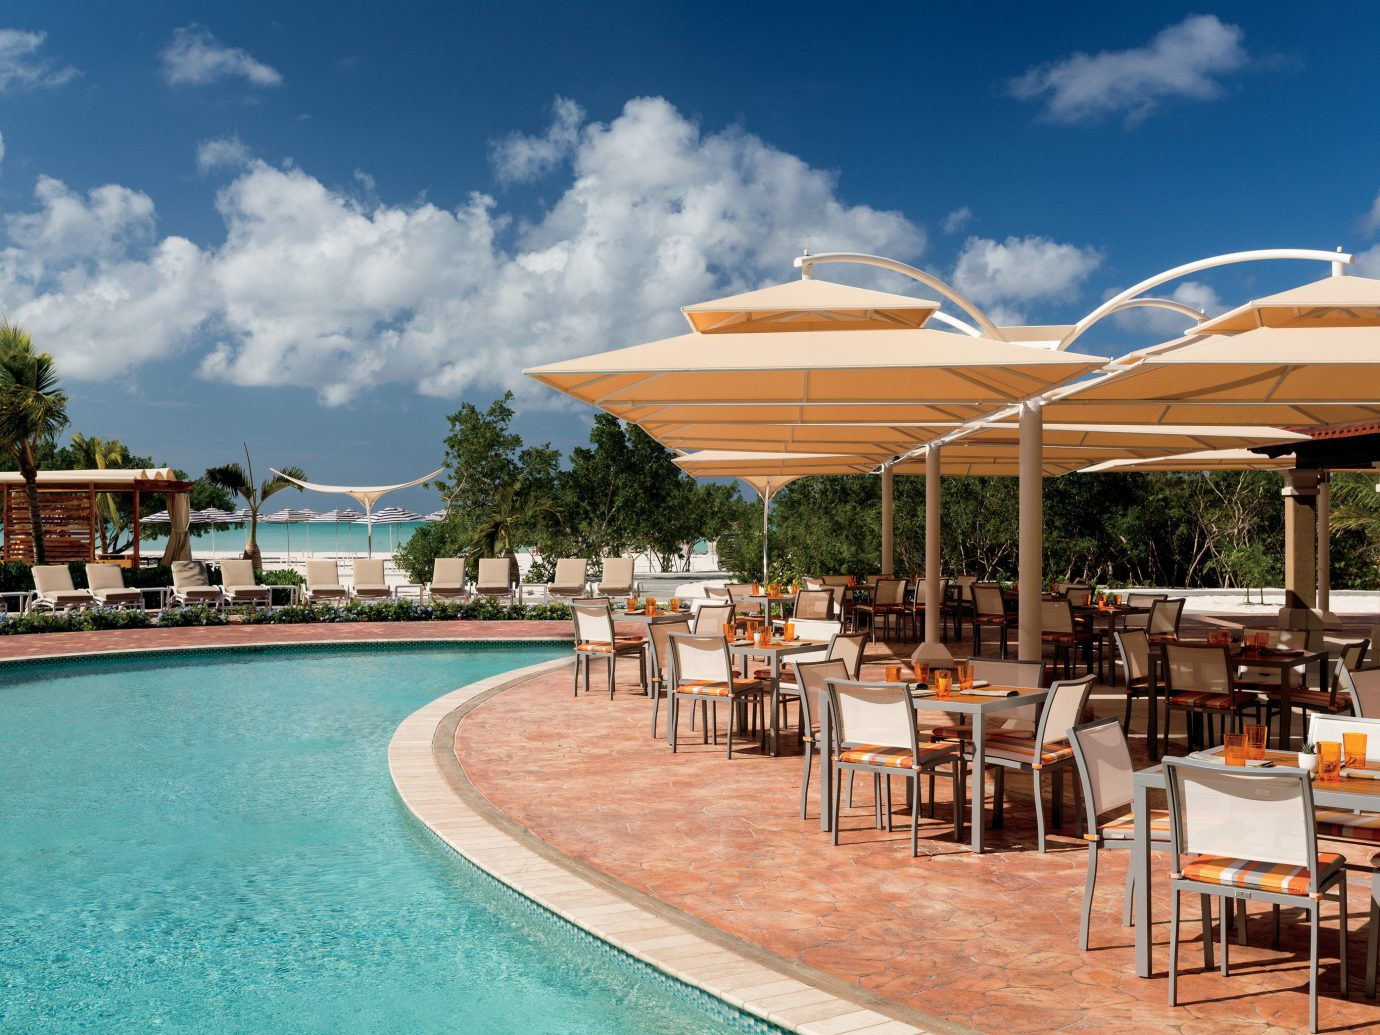 Aruba caribbean Hotels Trip Ideas sky chair outdoor table umbrella Resort swimming pool leisure real estate vacation resort town tourism estate outdoor structure hotel water Deck day several